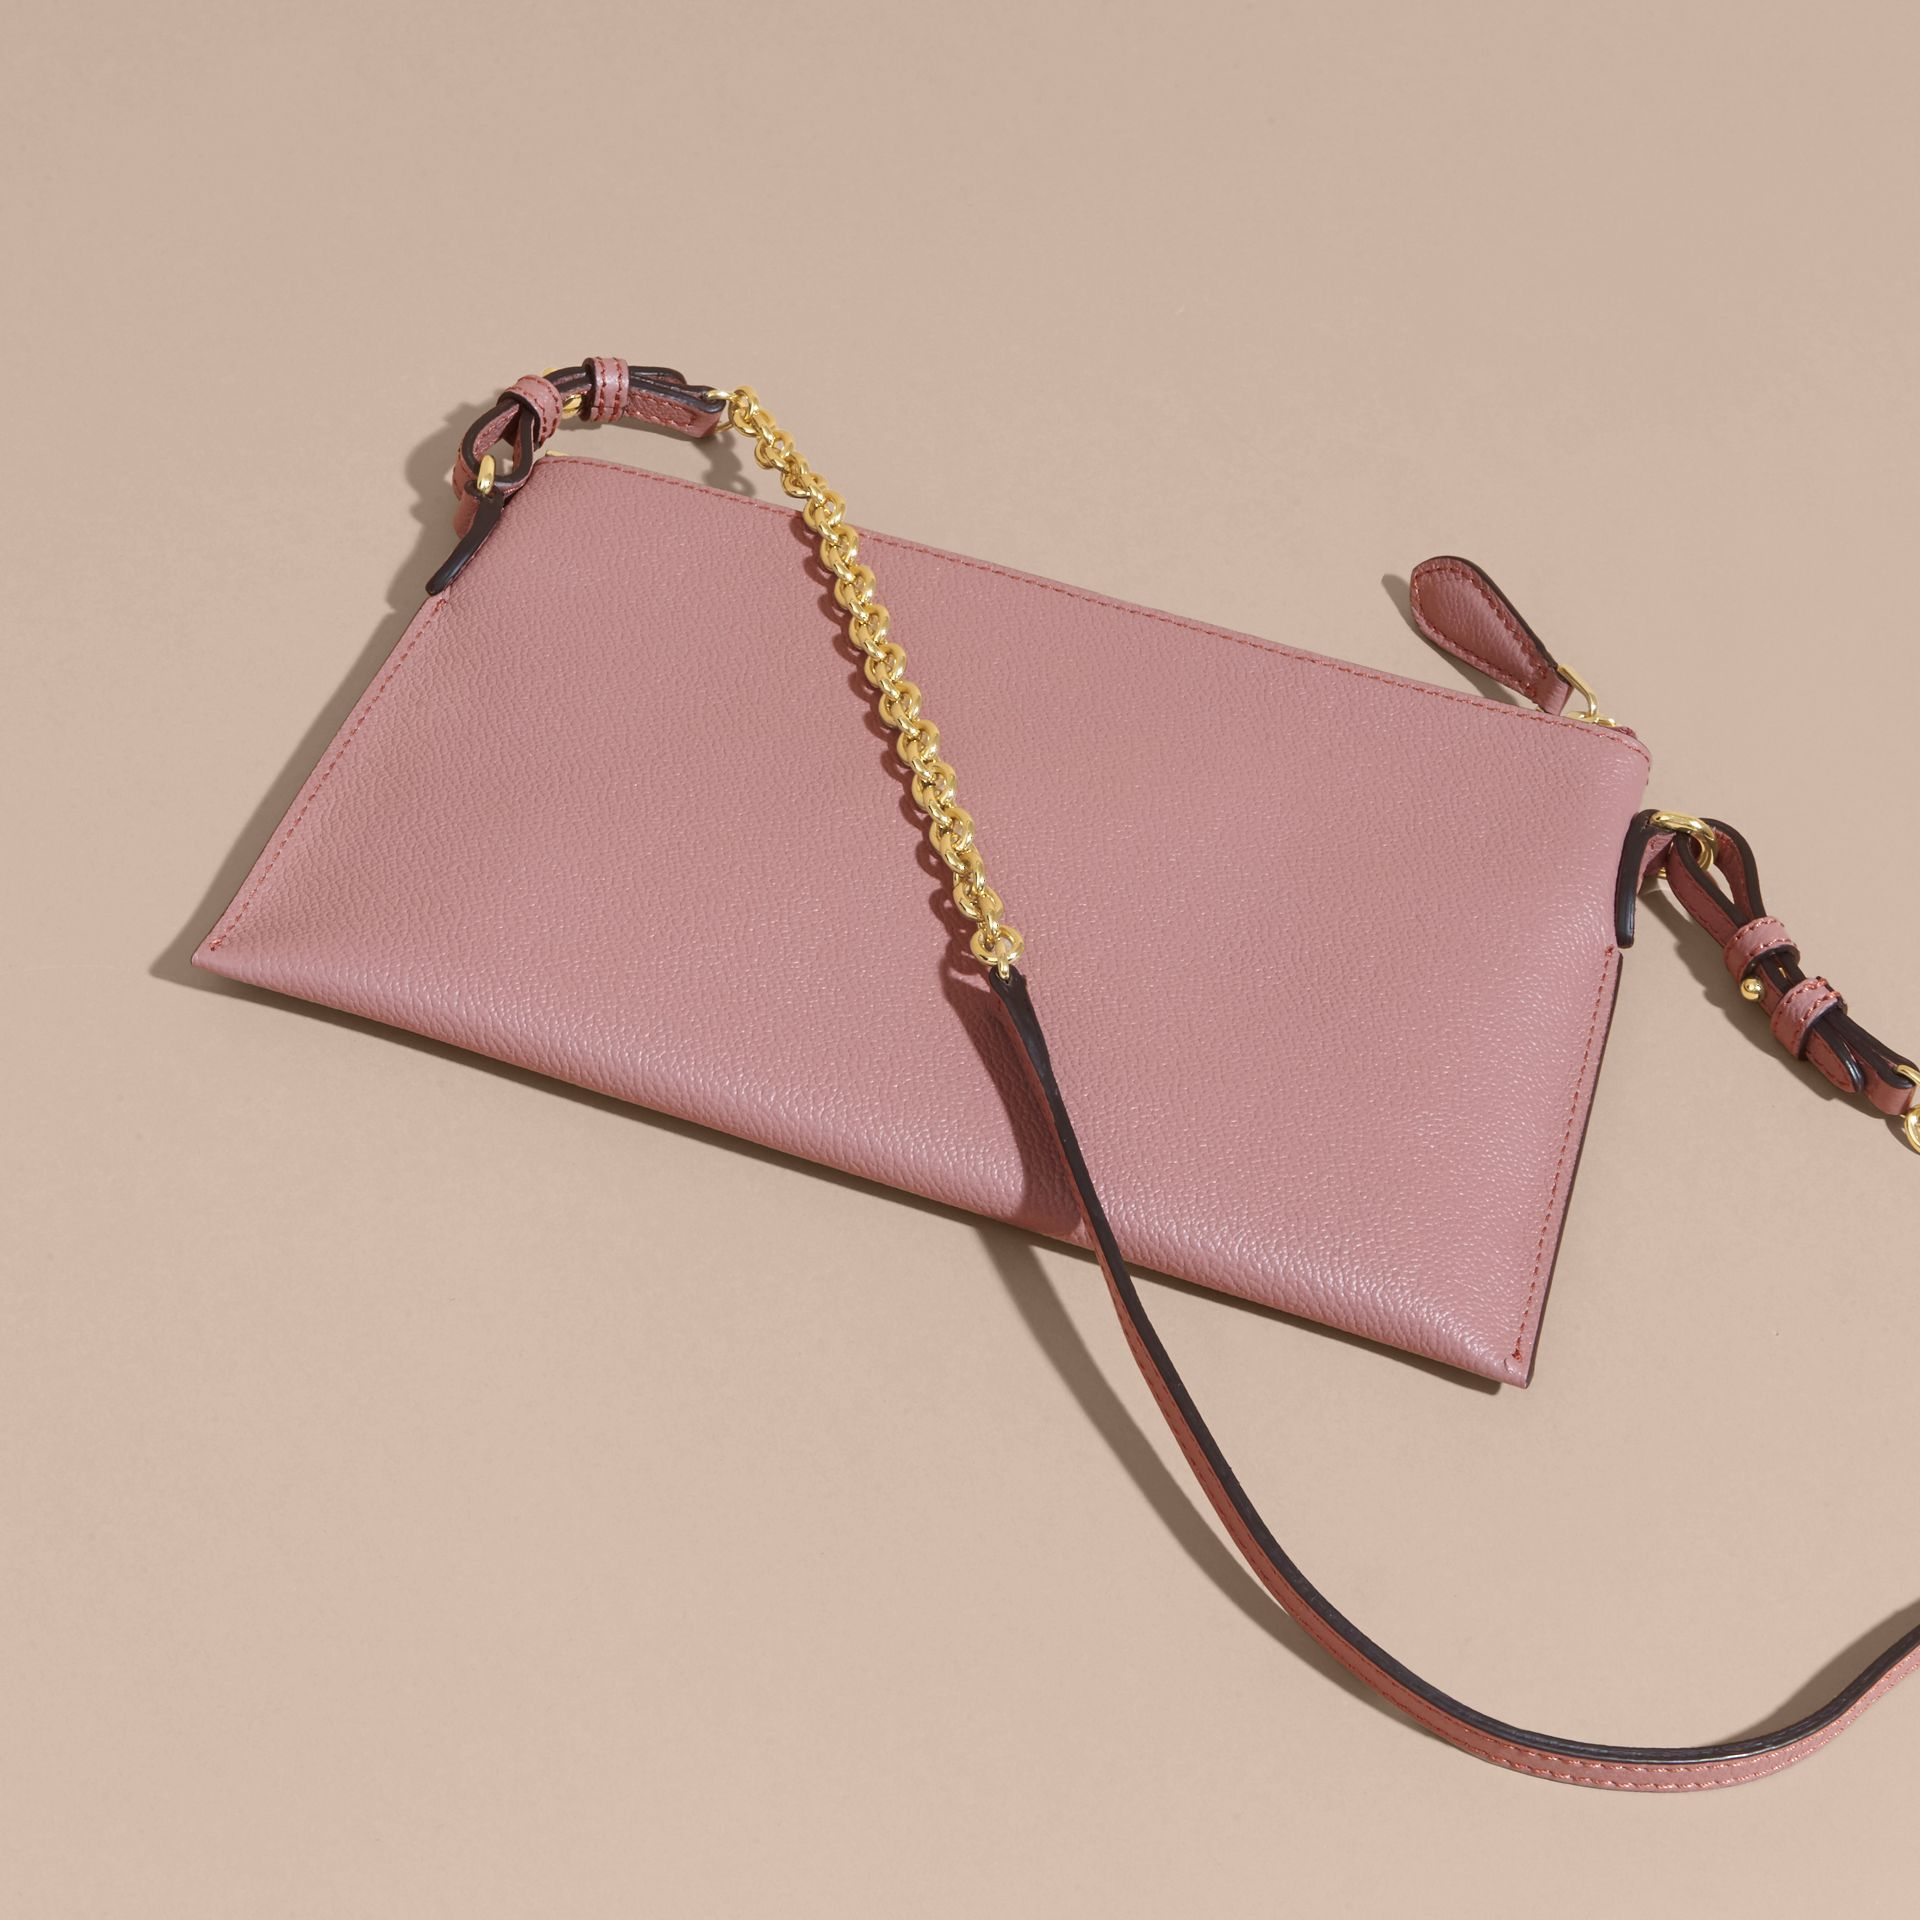 Leather Clutch Bag with Check Lining in Dusty Pink - Women | Burberry - gallery image 5